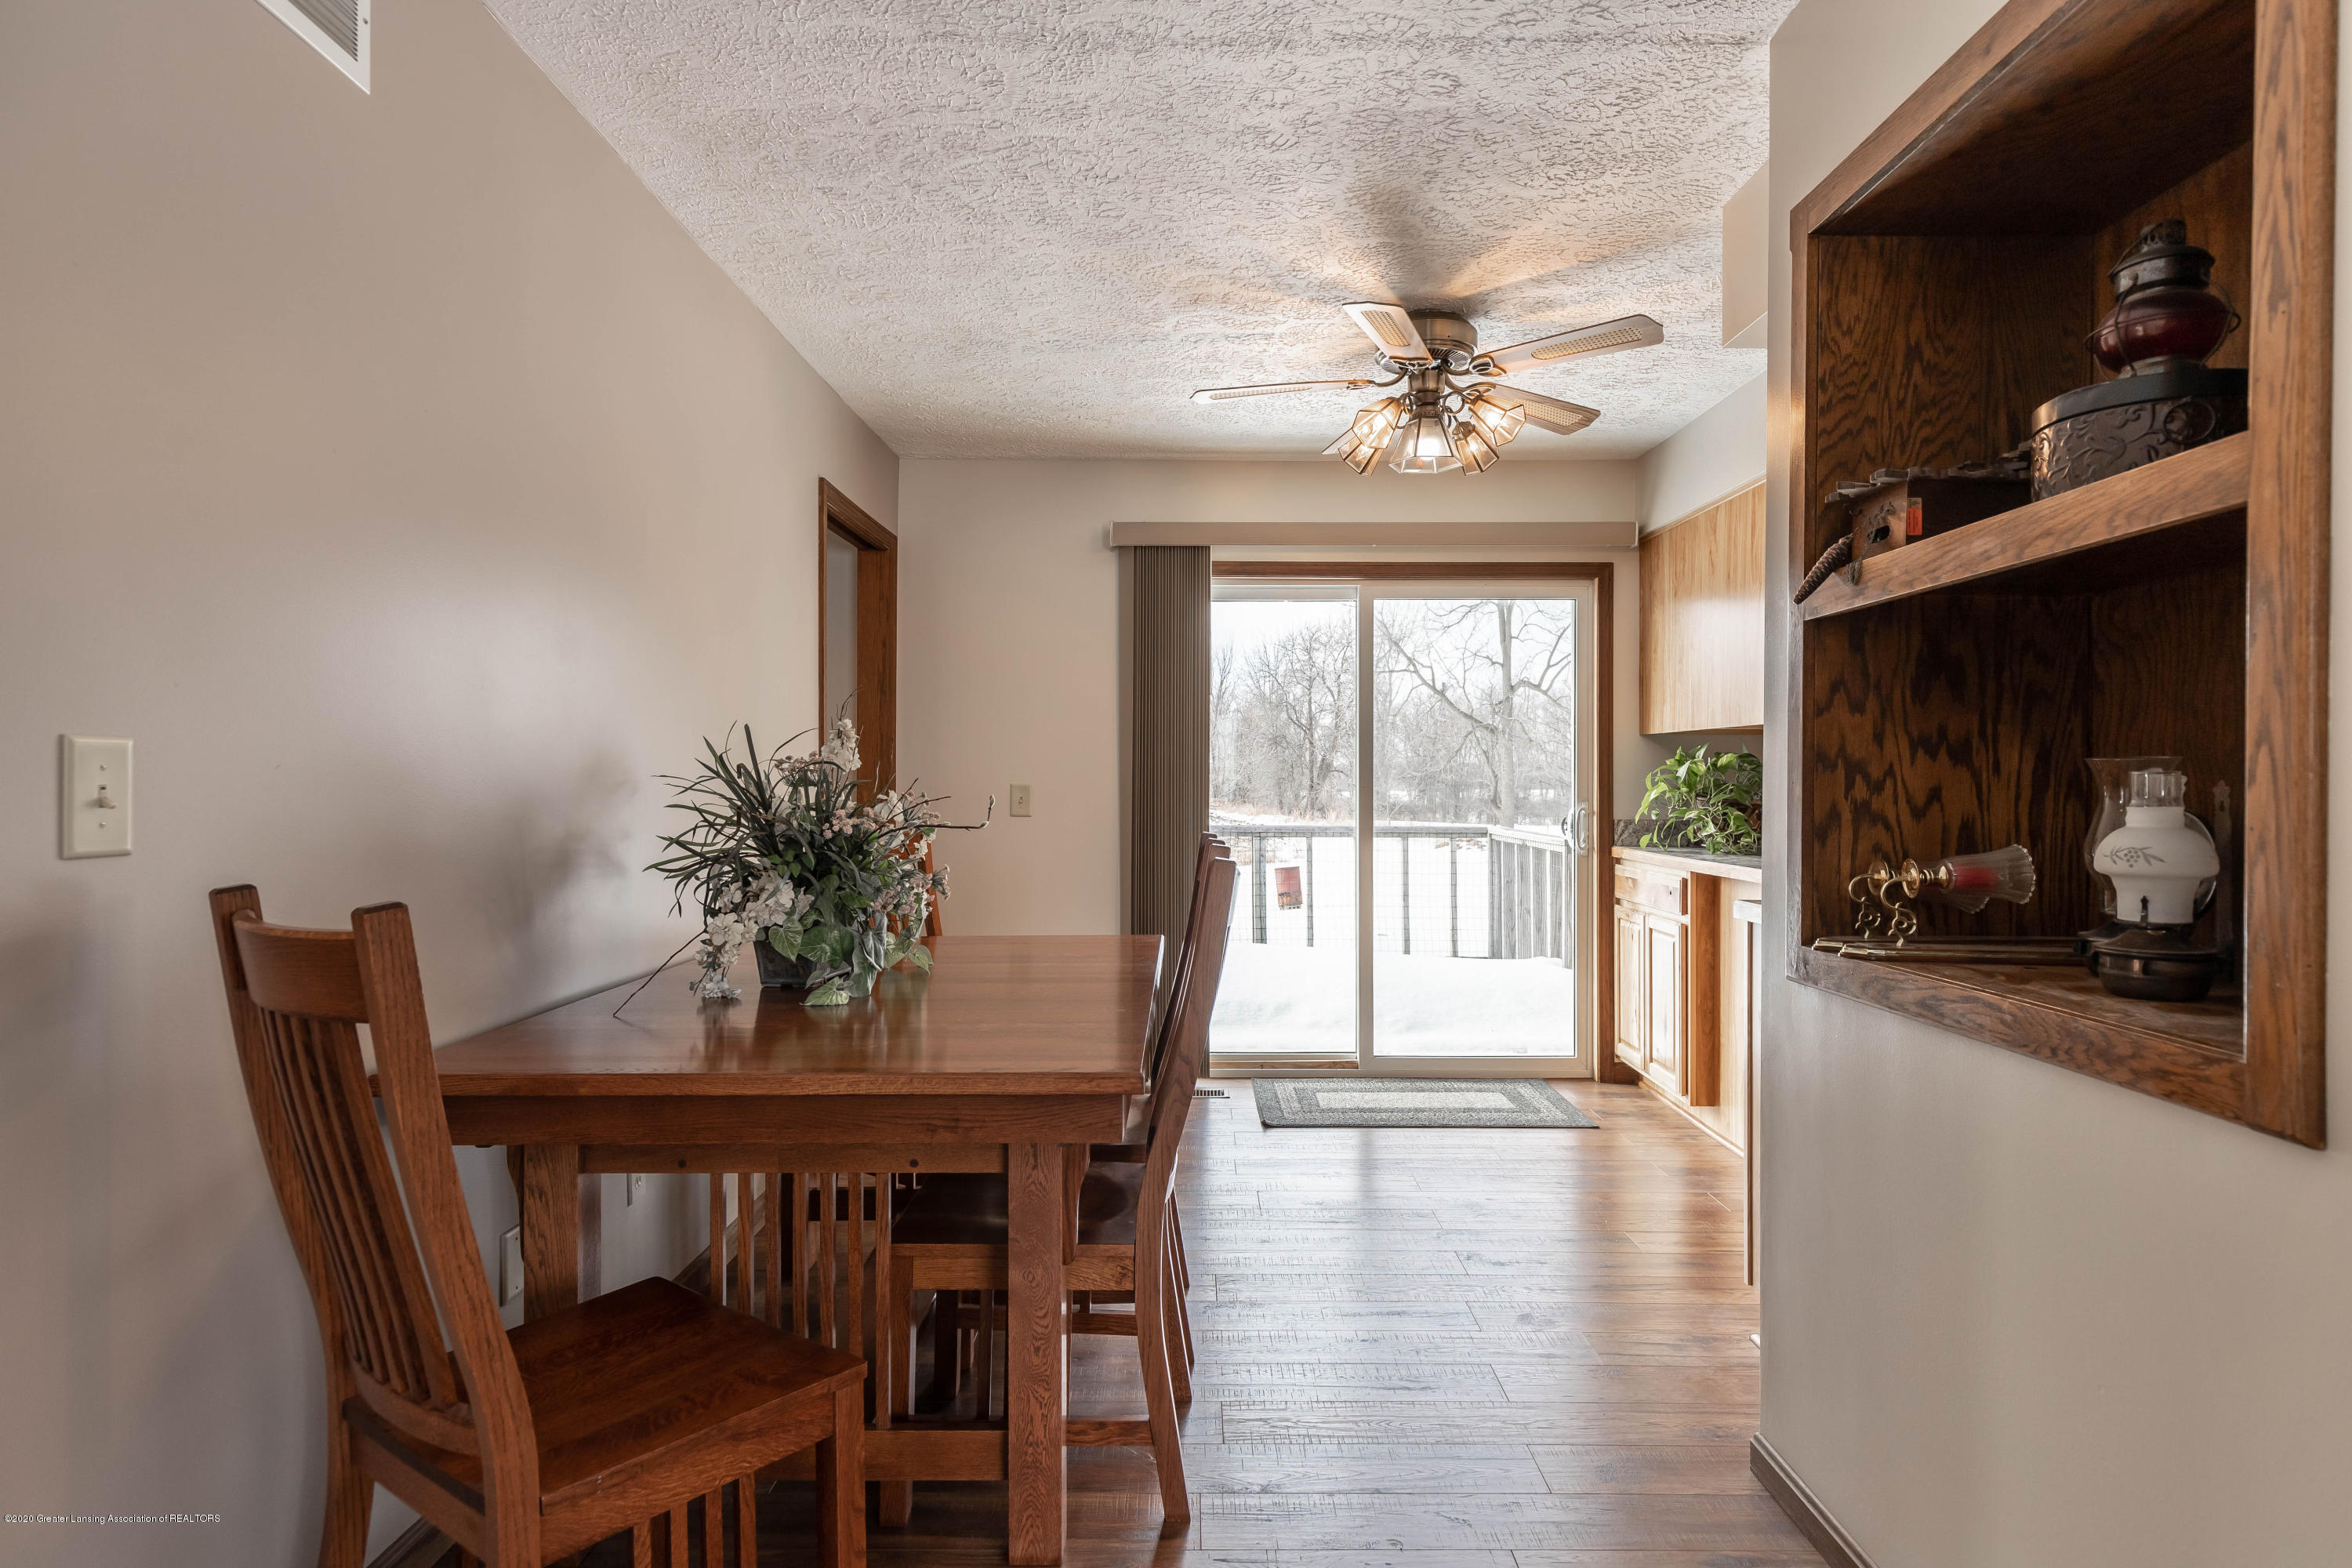 6111 S Morrice Rd - Dining Area - 6